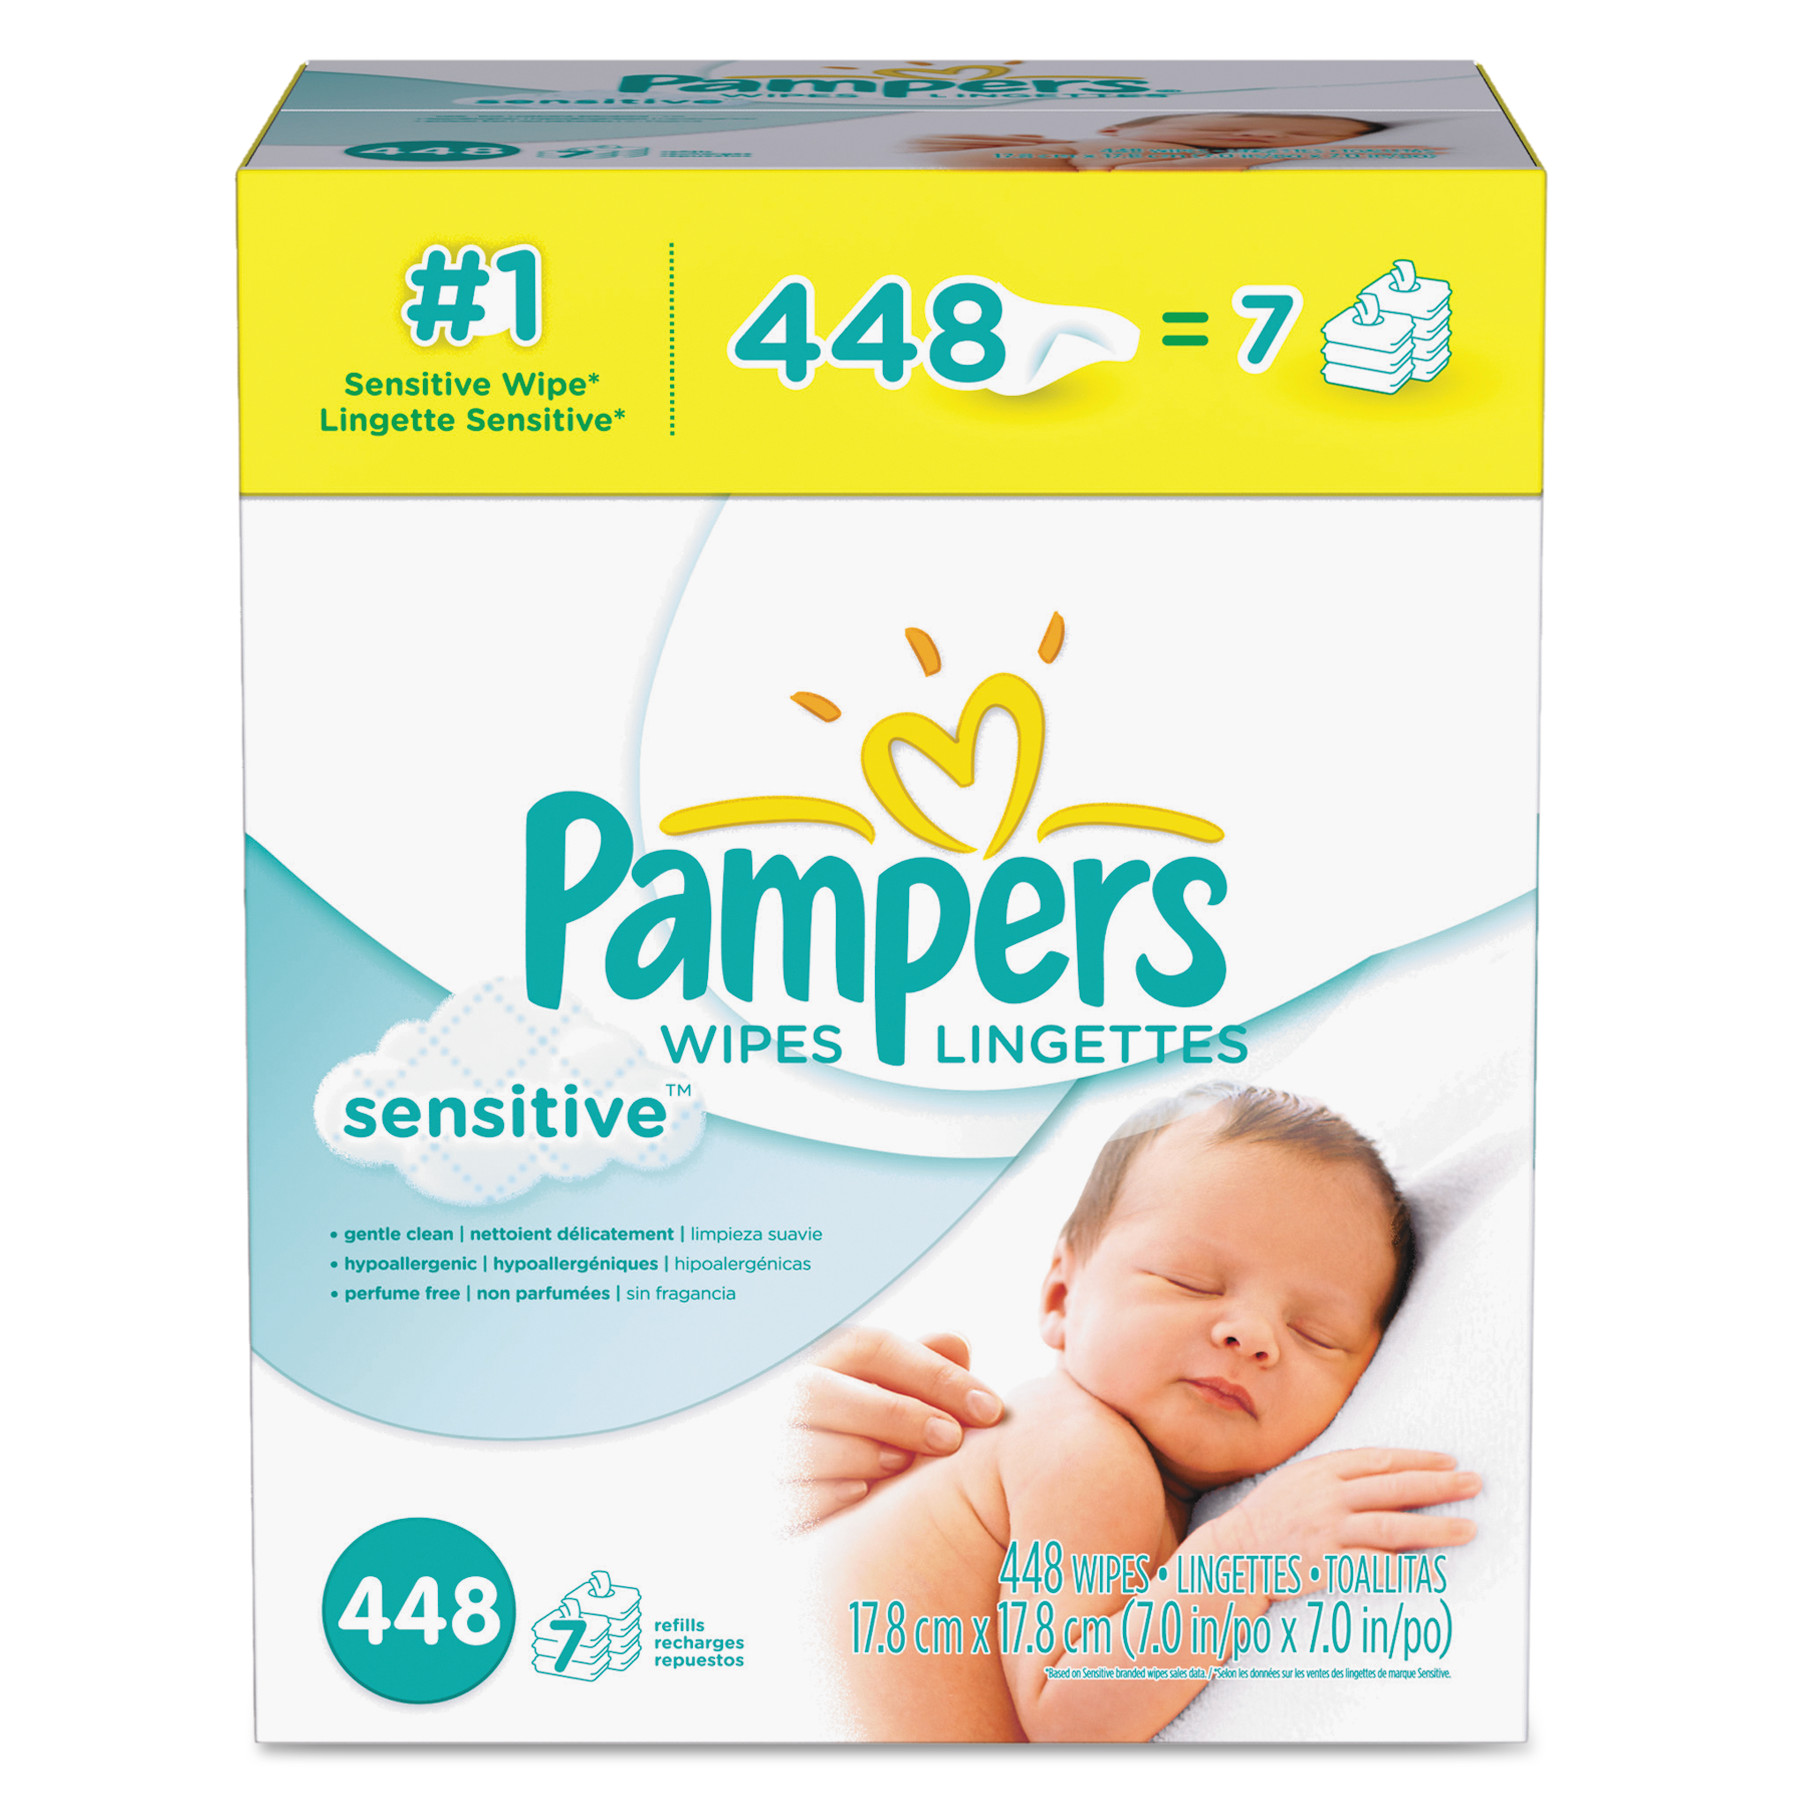 Pampers Sensitive Baby Wipes Refills, Unscented, 7 packs of 48 (448 count)